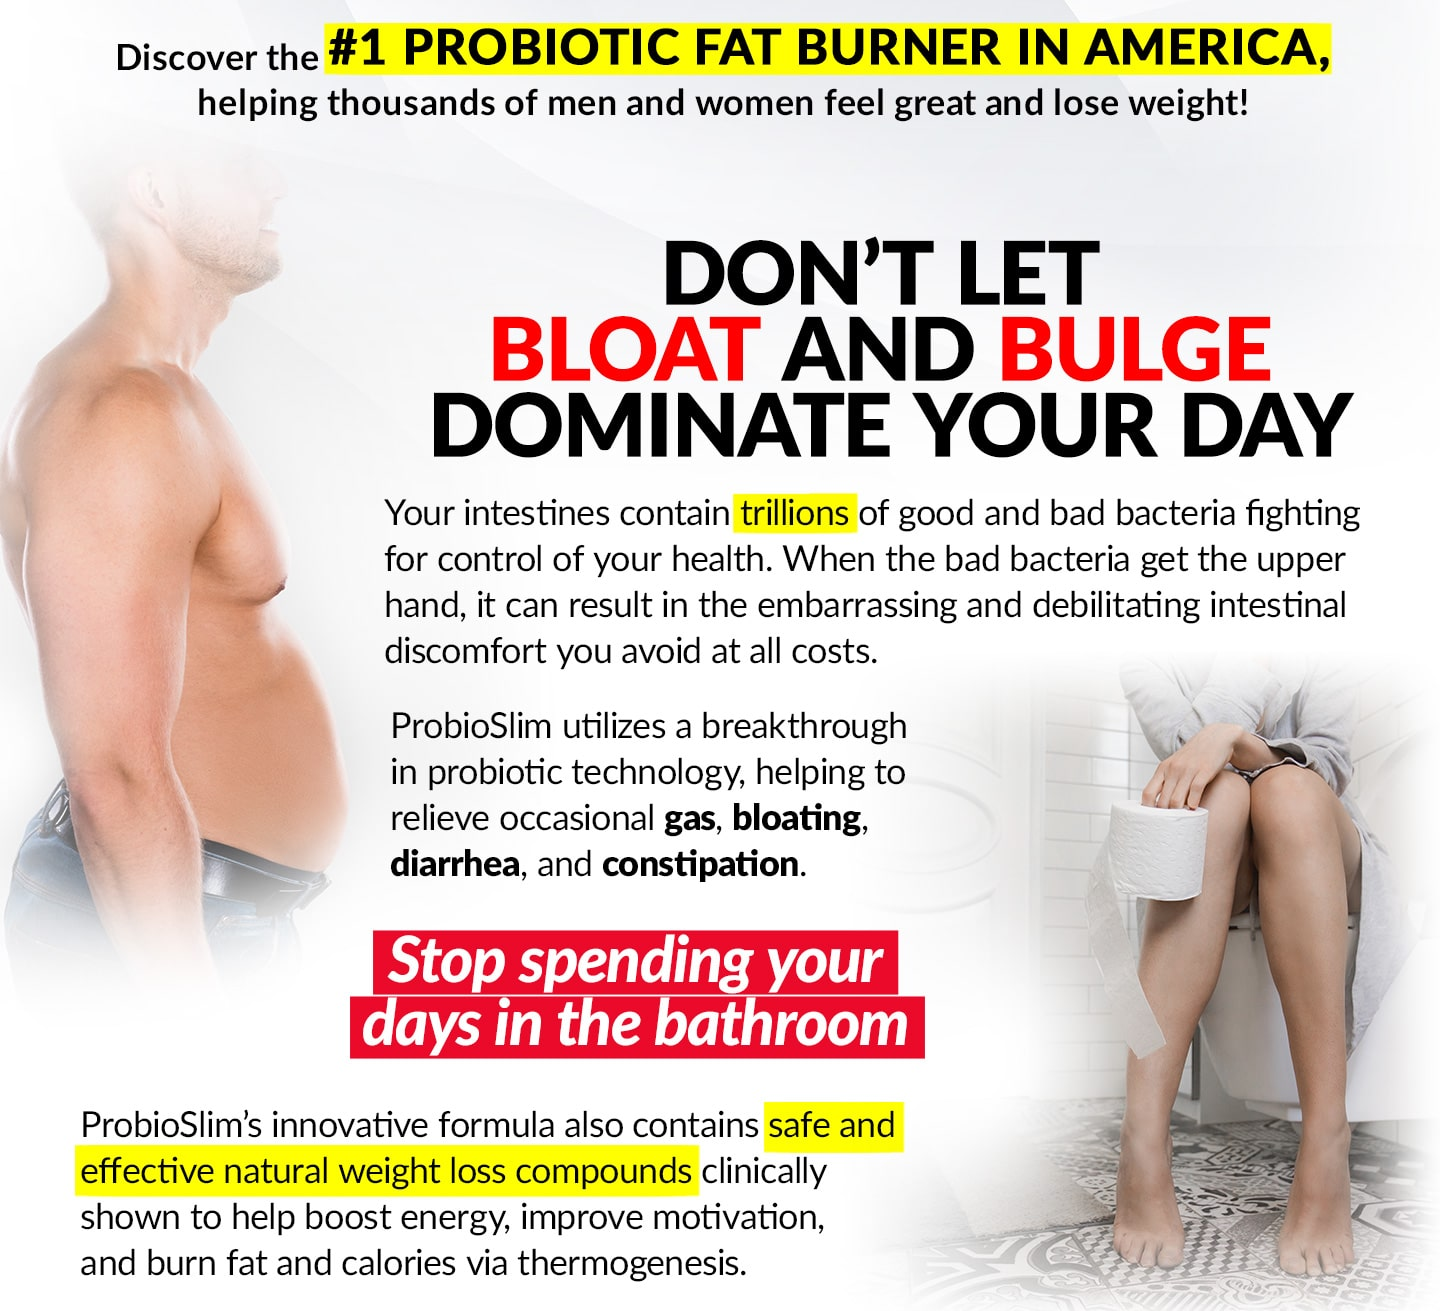 Discover the #1 probiotic fat burner in America, helping thousands of men and women feel great and lose weight! DON'T LET BLOAT AND BULGE DOMINATE YOUR DAY Your intestines contain trillions of good and bad bacteria fighting for control of your health. When the bad bacteria get the upper hand, it can result in the embarrassing and debilitating intestinal discomfort you avoid at all costs. ProbioSlim utilizes a breakthrough in probiotic technology, helping to relieve occasional gas, bloating, diarrhea, and constipation. Stop spending your days in the bathroom! ProbioSlim's innovative formula also contains safe and effective natural weight loss compounds clinically shown to help boost energy, improve motivation, and burn fat and calories via thermogenesis.